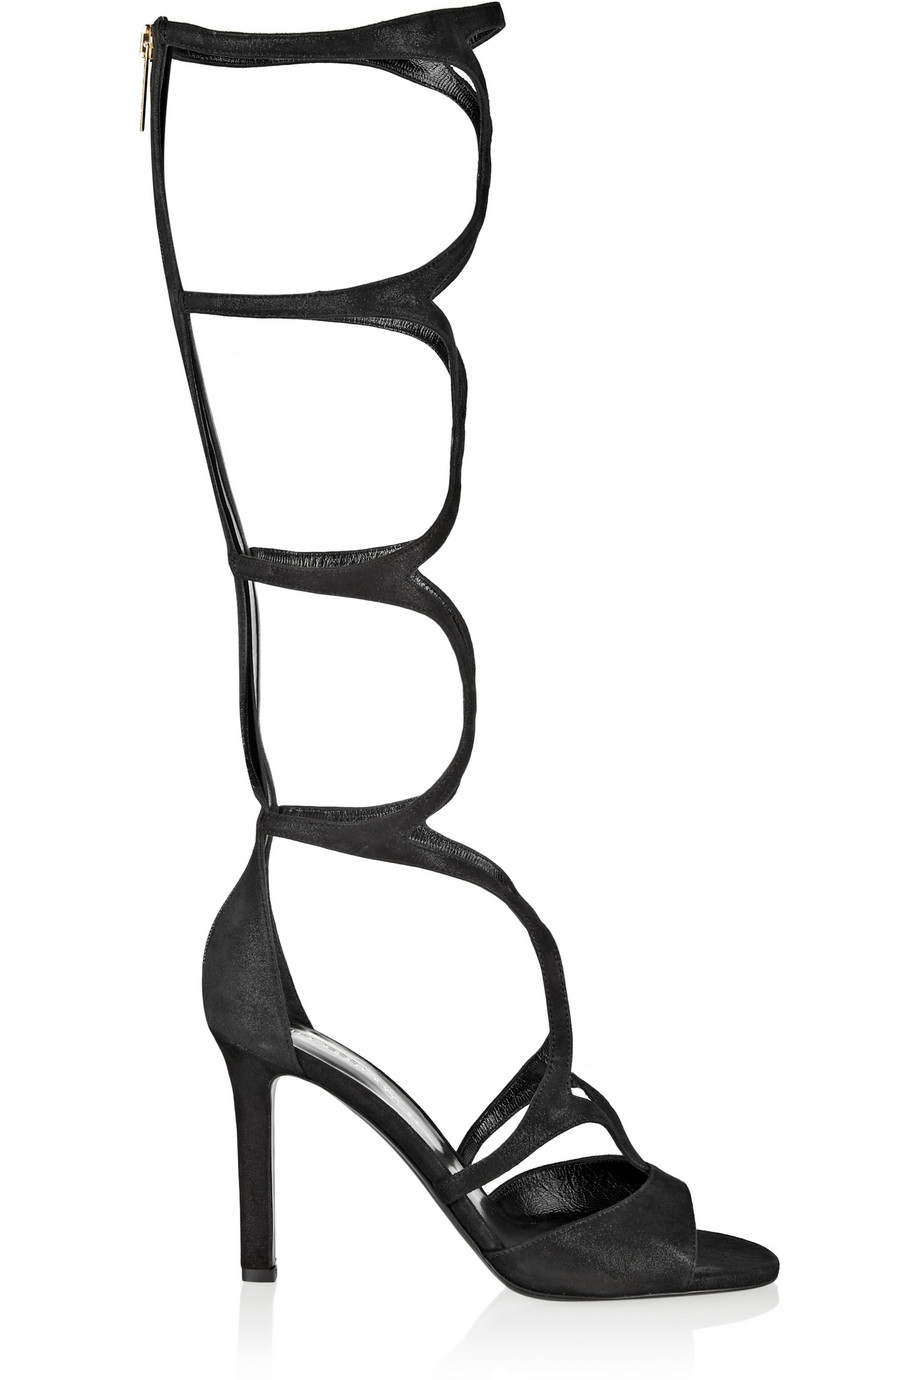 Tamara Mellon Exposure Suede Sandals $597.50